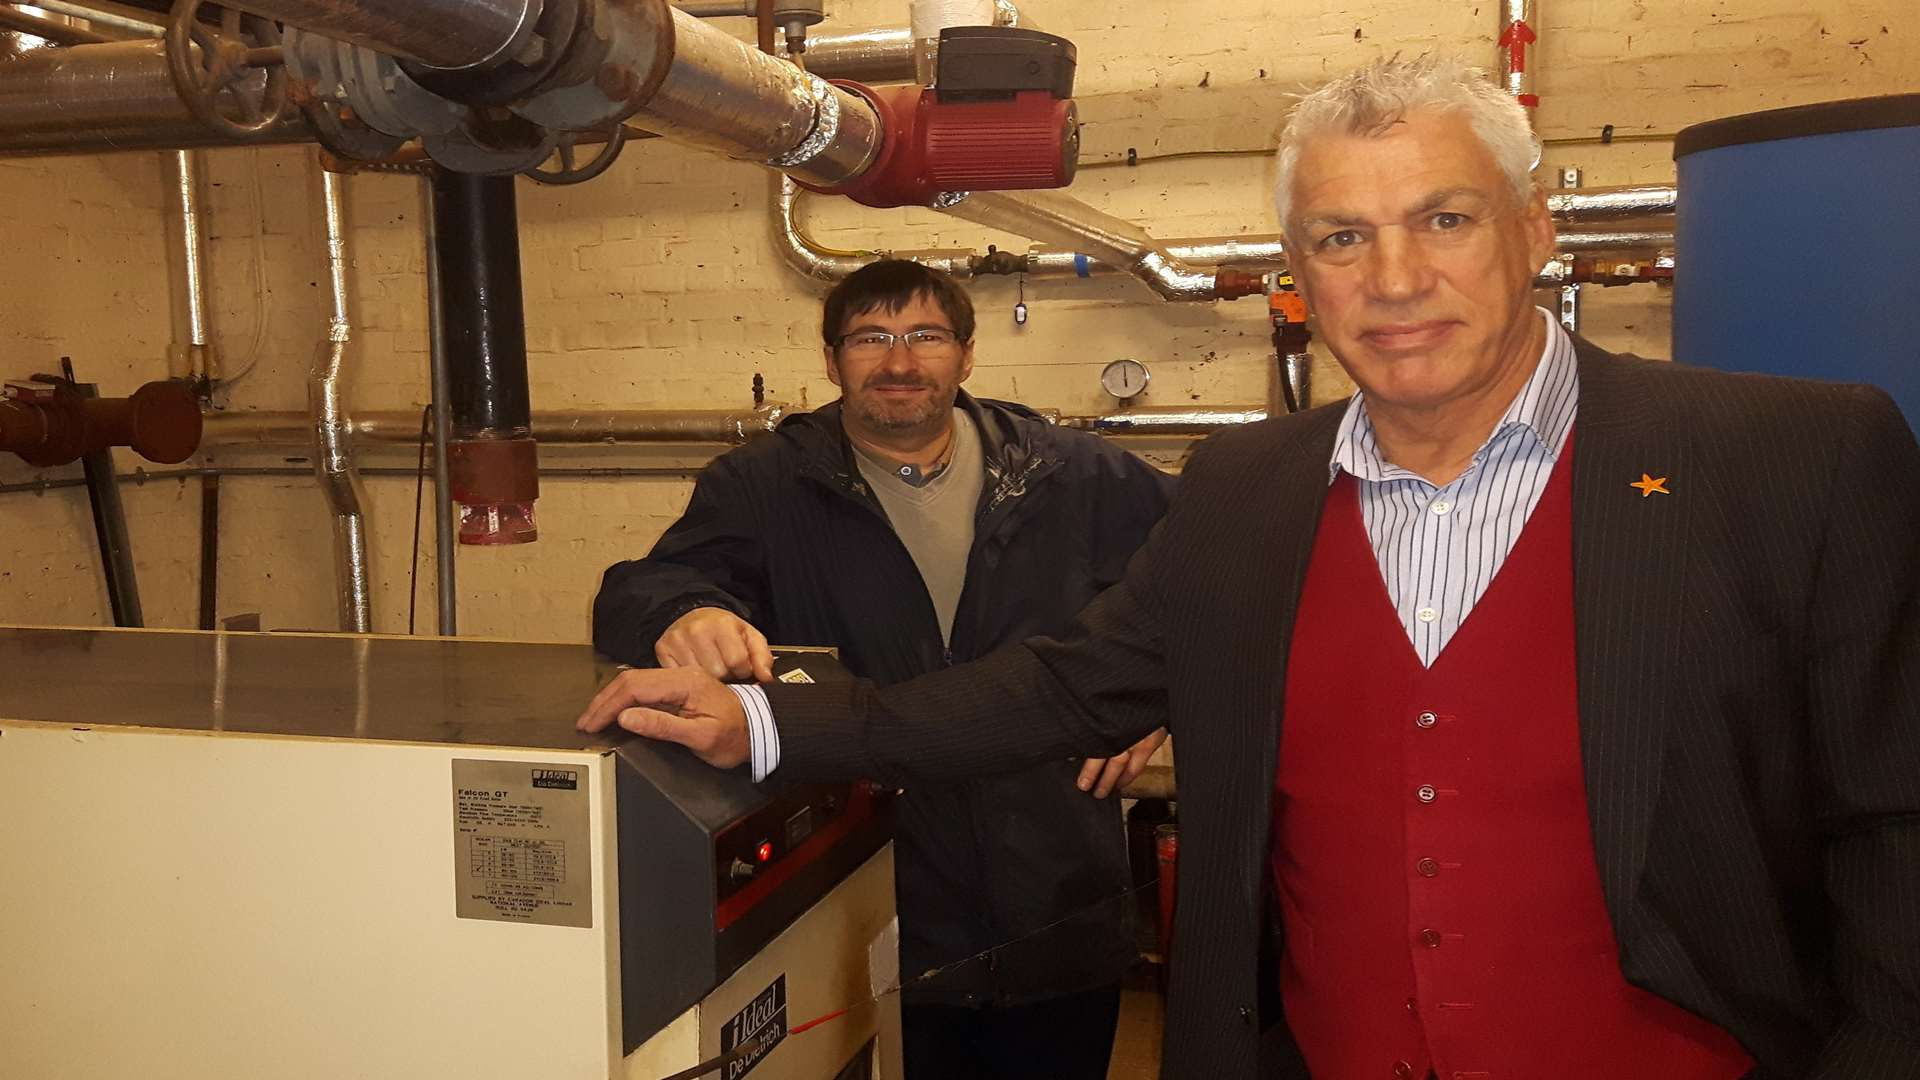 Head teacher Stuart Pywell and caretaker Keith Burgess in the school's boiler room